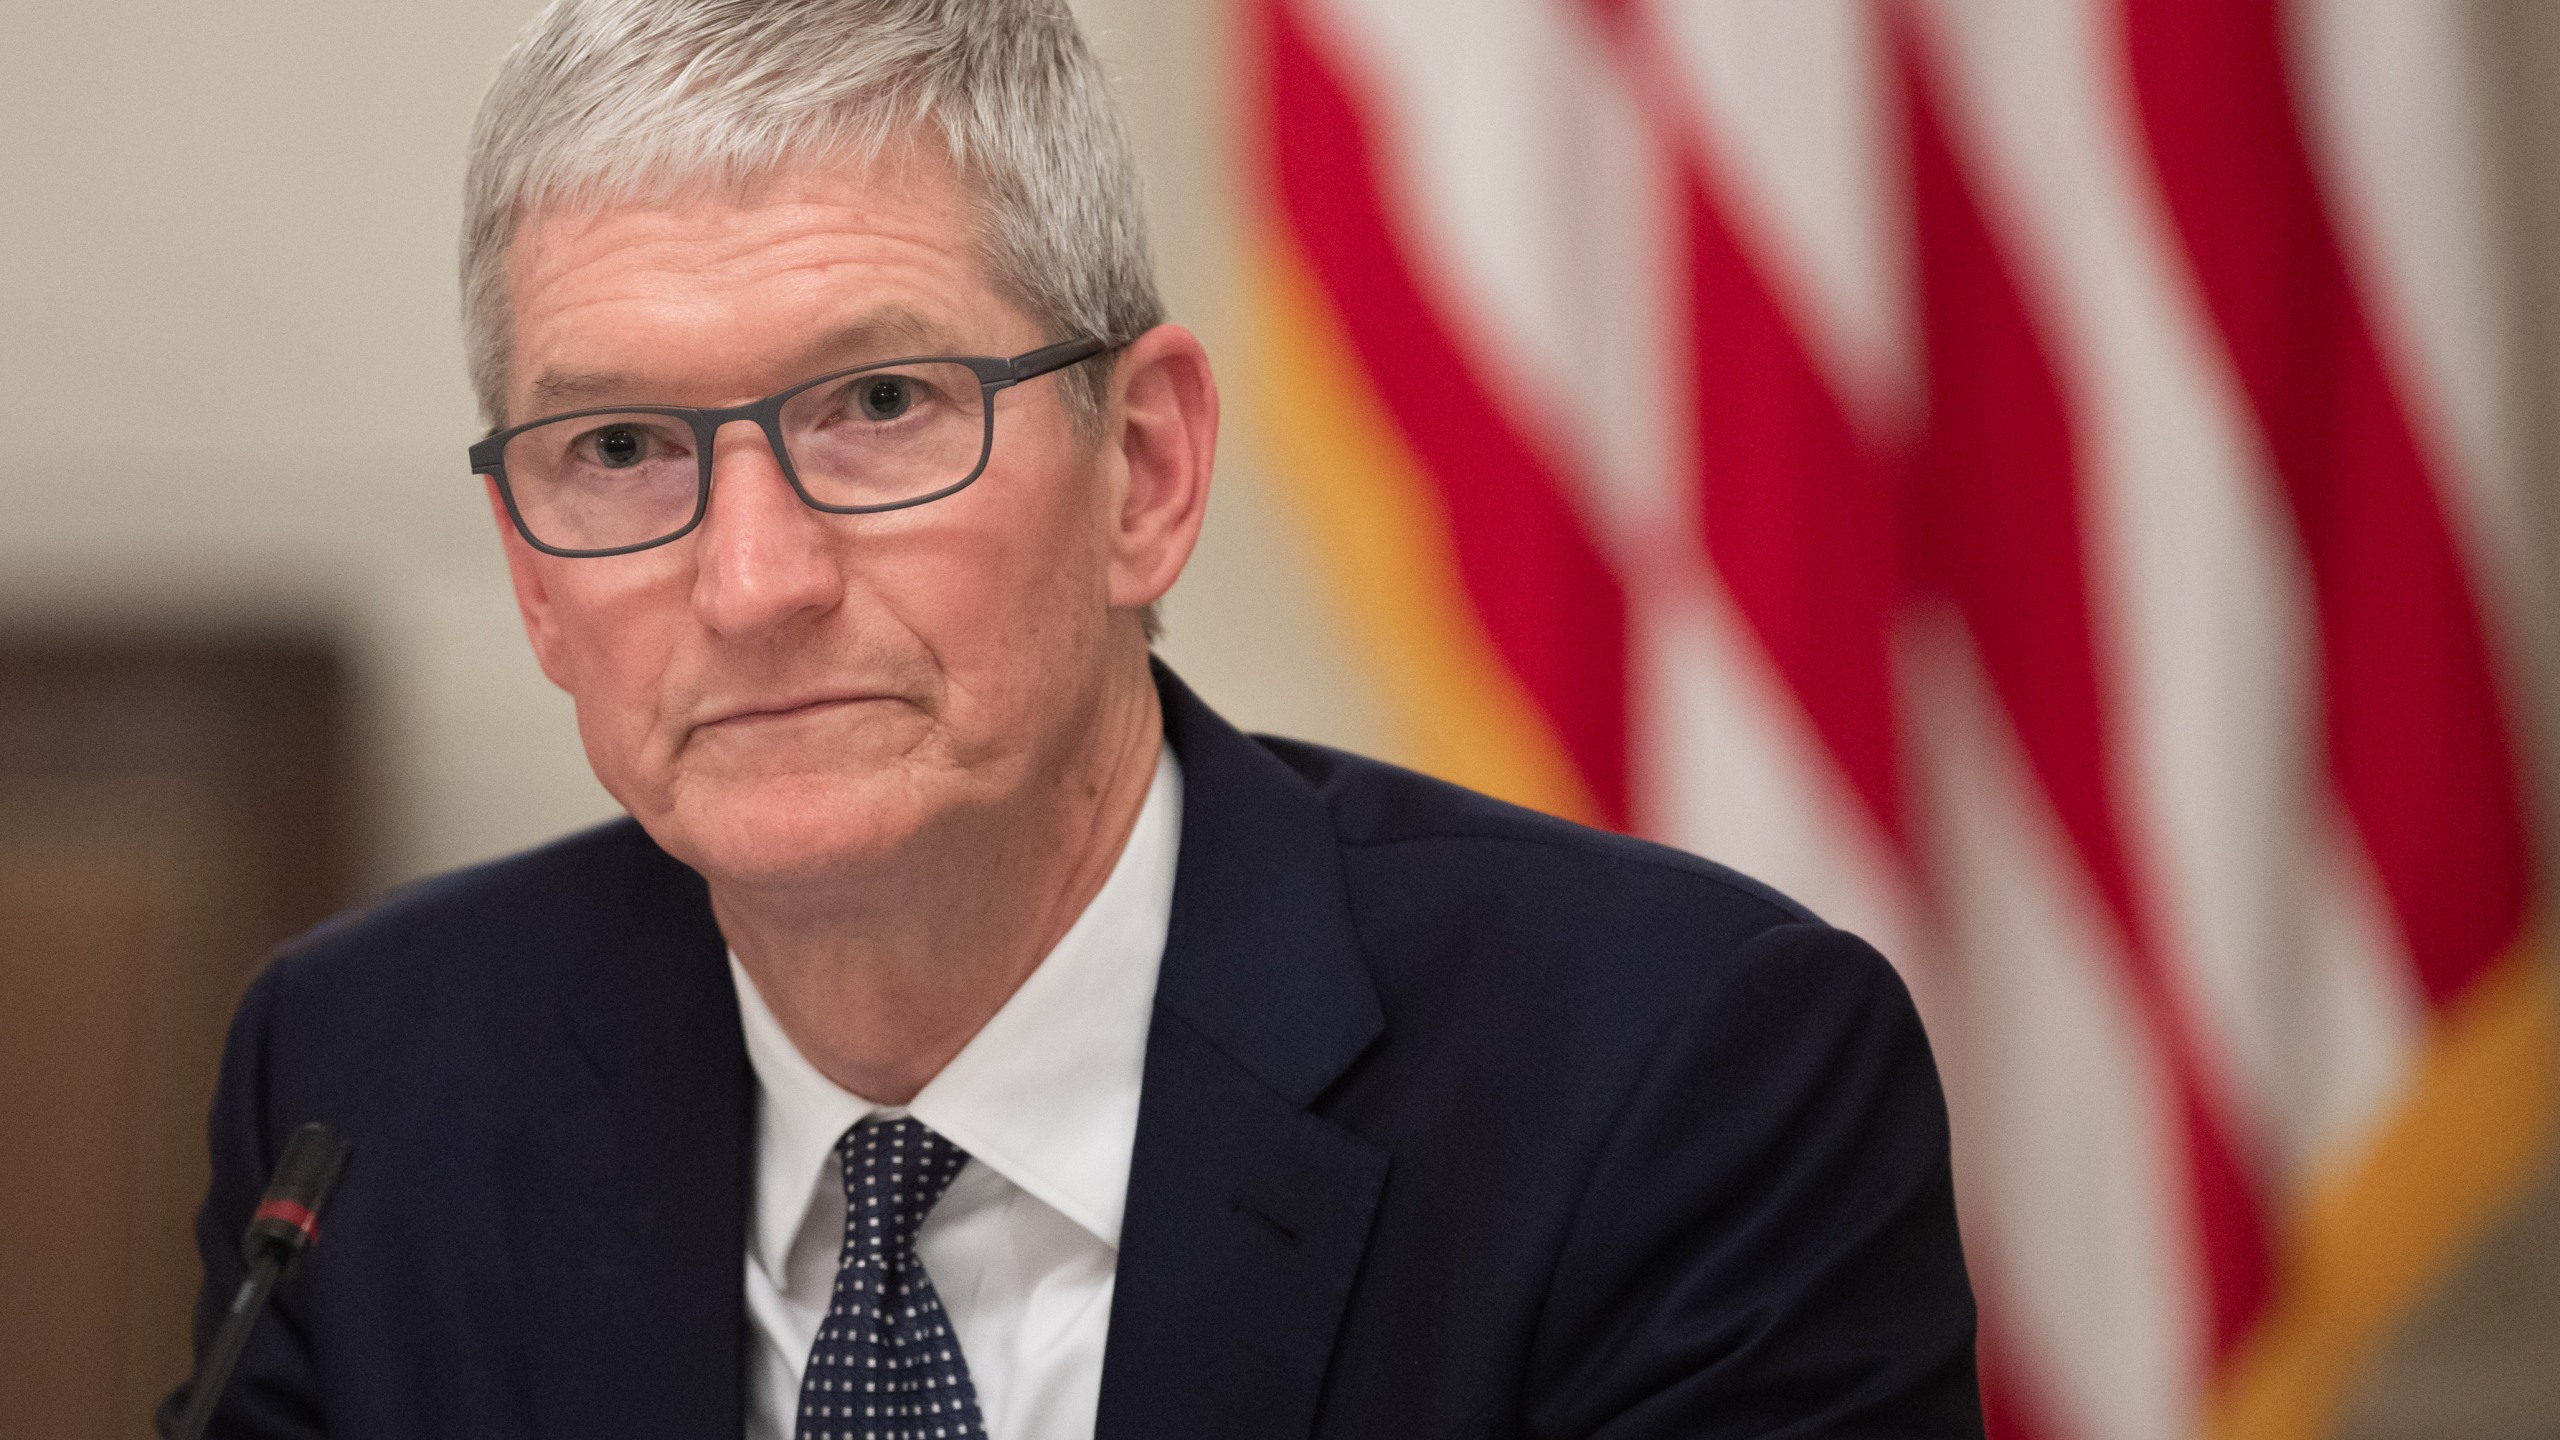 Apple CEO Tim Cook attends a meeting at the White House in Washington, D.C. on March 6, 2019. (Credit: SAUL LOEB/AFP/Getty Images)